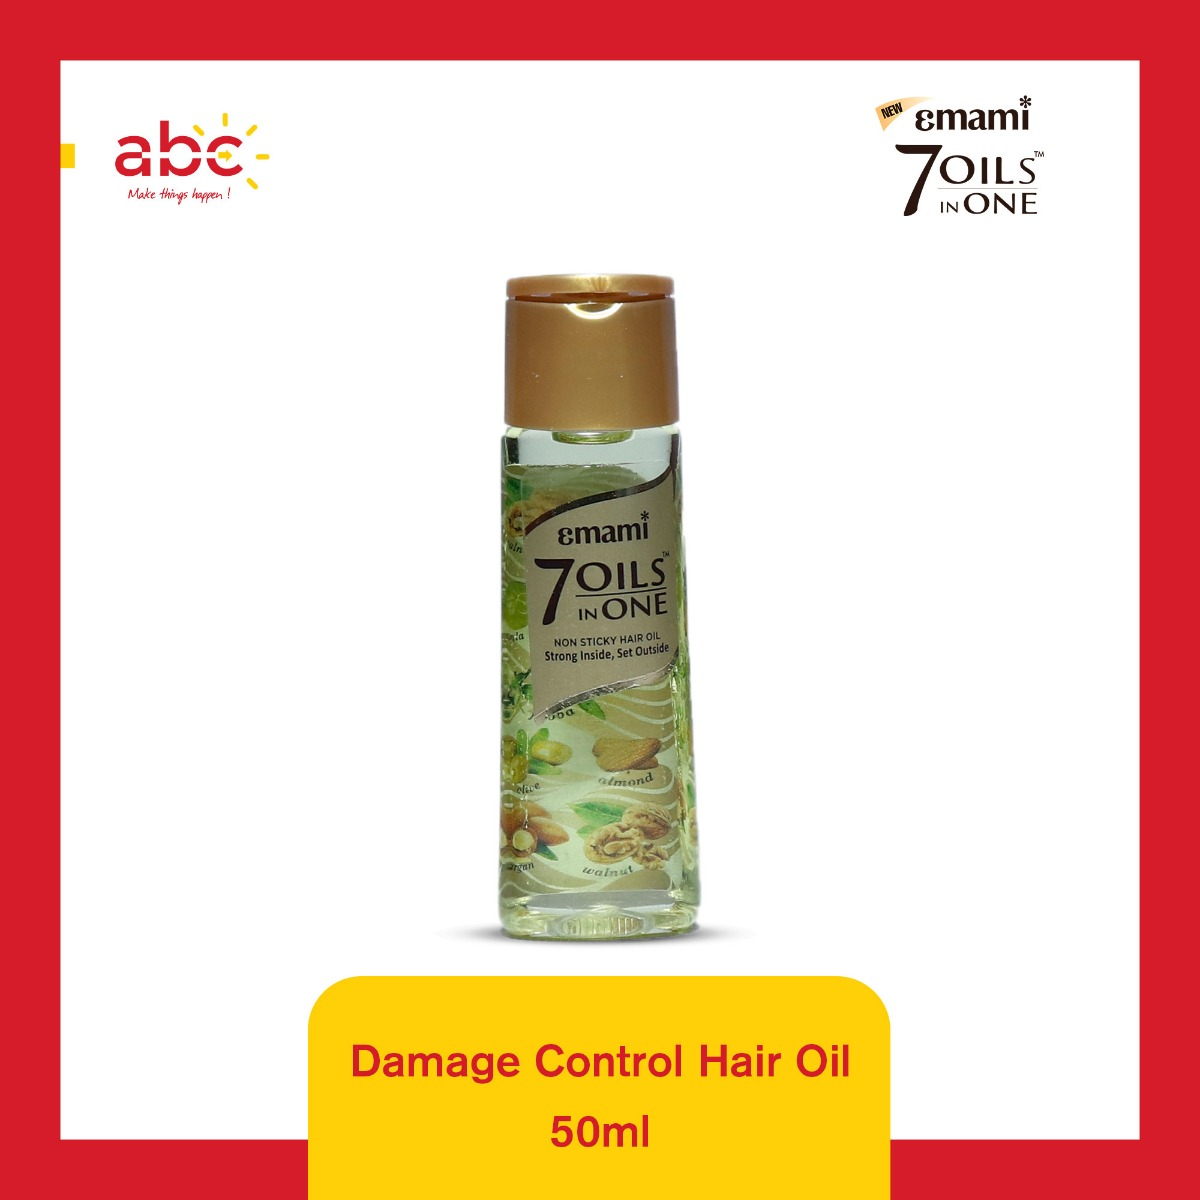 7 Oils In One Damage Control Hair Oil	50ML